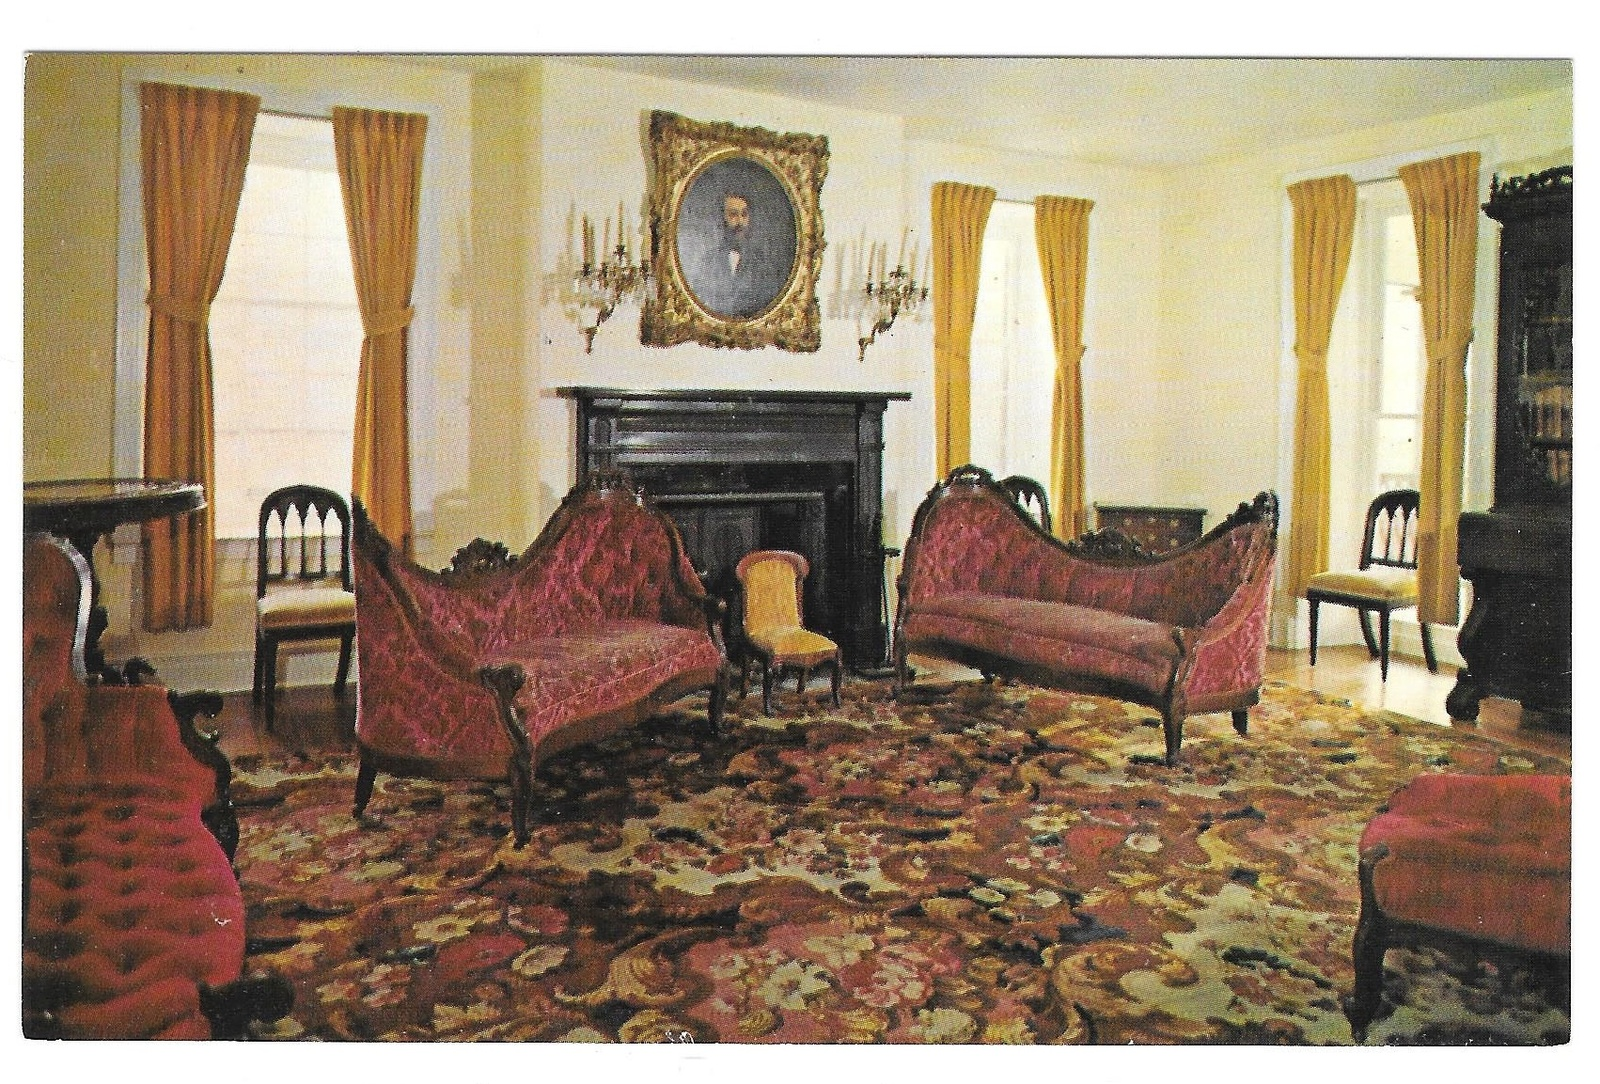 97 br 3850 315 pa hopewell village parlor of big house